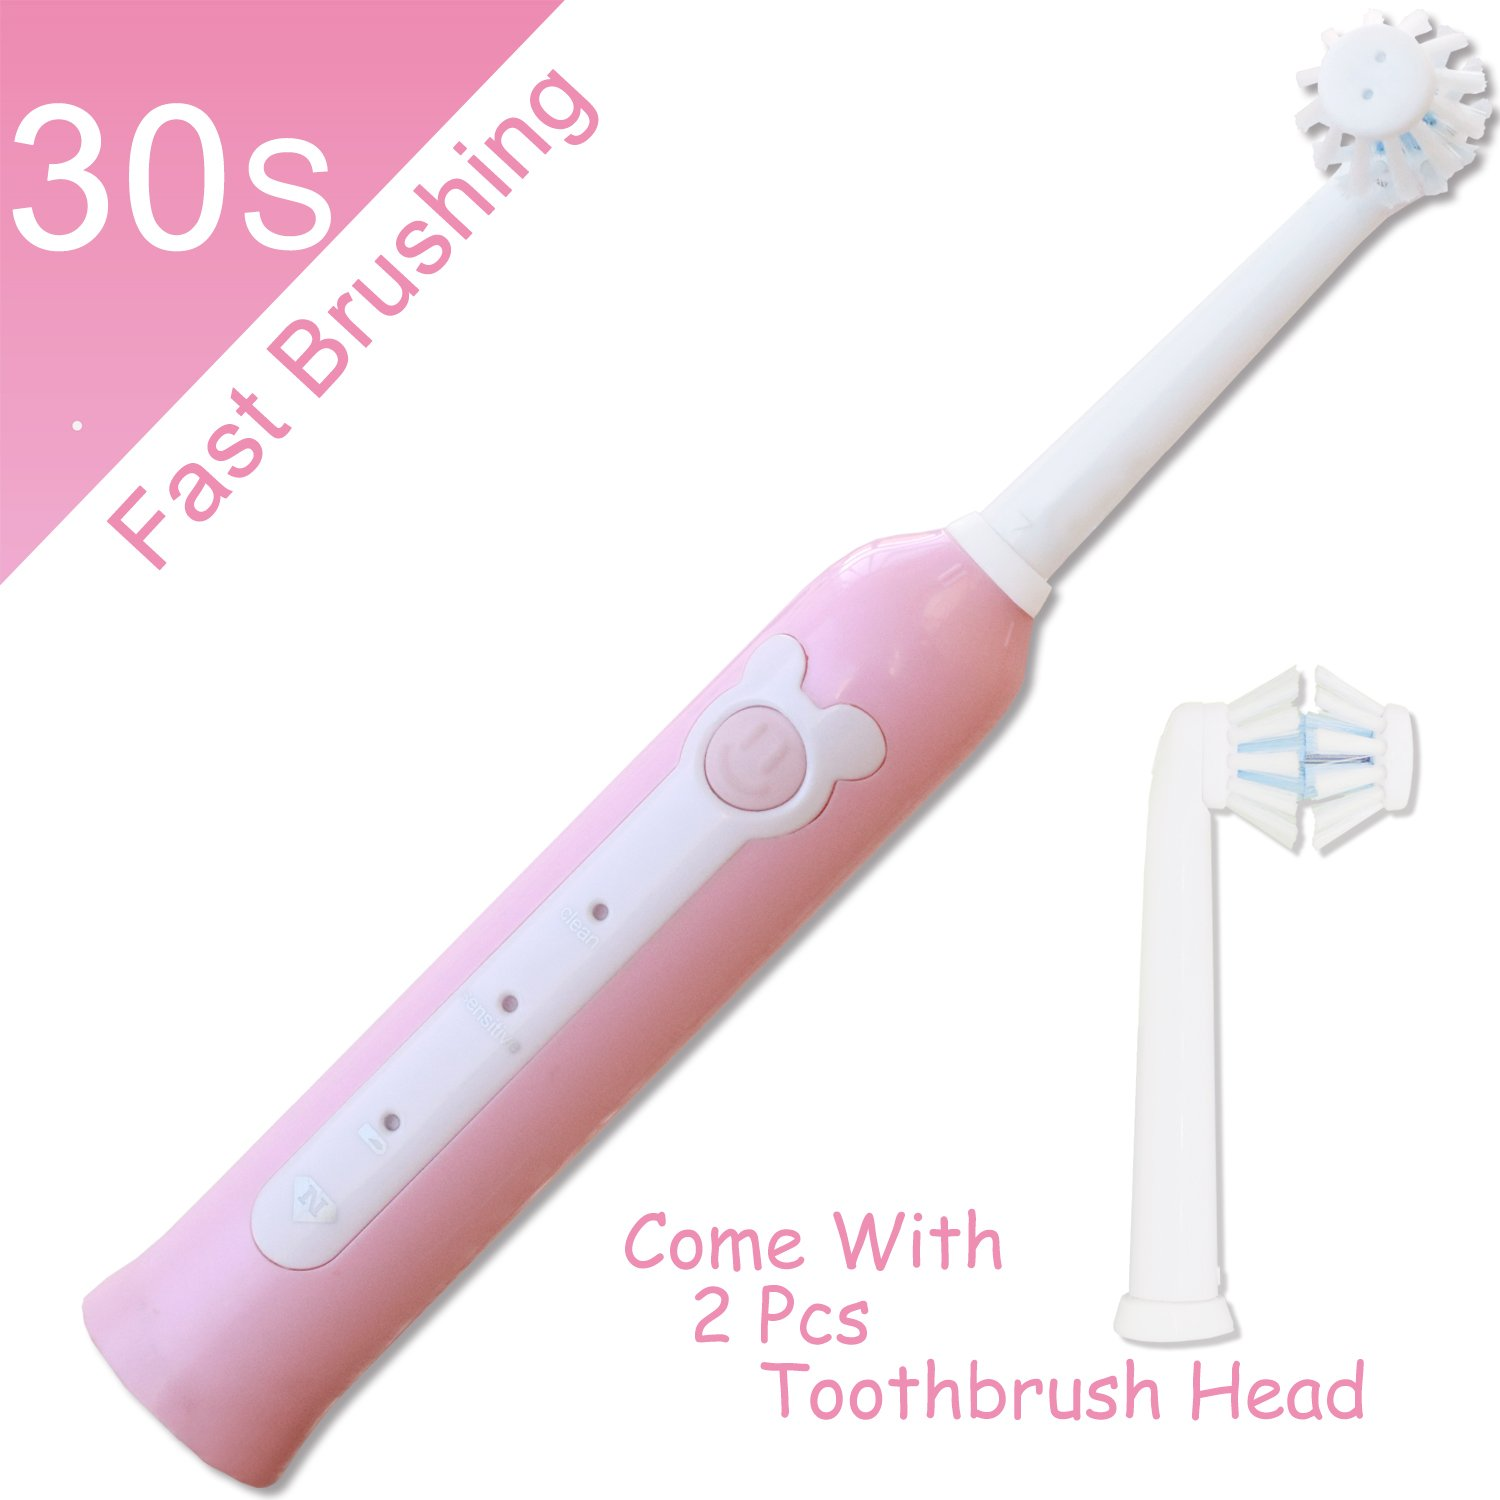 Electric toothbrush kids,NeWisdom 360° rotating 30s FAST brushing Rechargeable WIRELESS CHARGING Electric Toothbrush for Children,4 hours charging,30 days working (Wireless Charge Pink 9-14) by NeWisdom (Image #2)